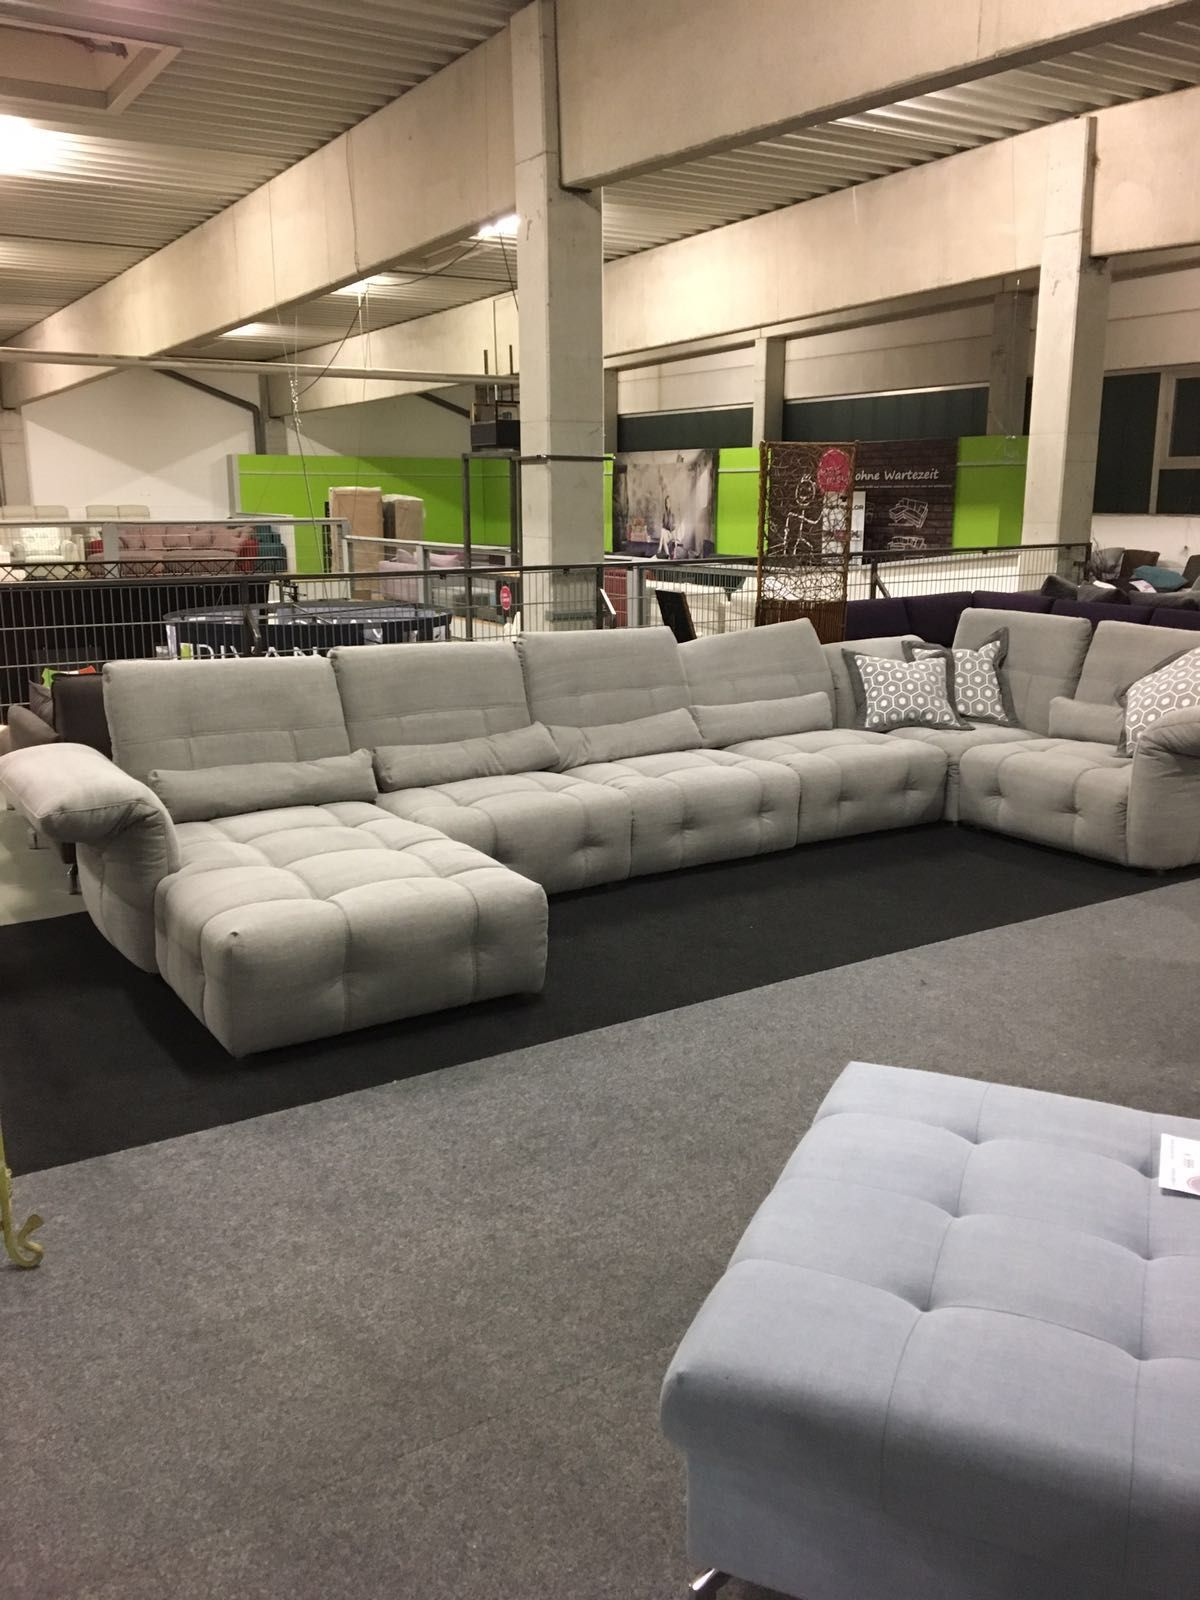 Big Sofa Günstig Pin Von Sofa Depot Auf Big Sofas Https Sofadepot De Big